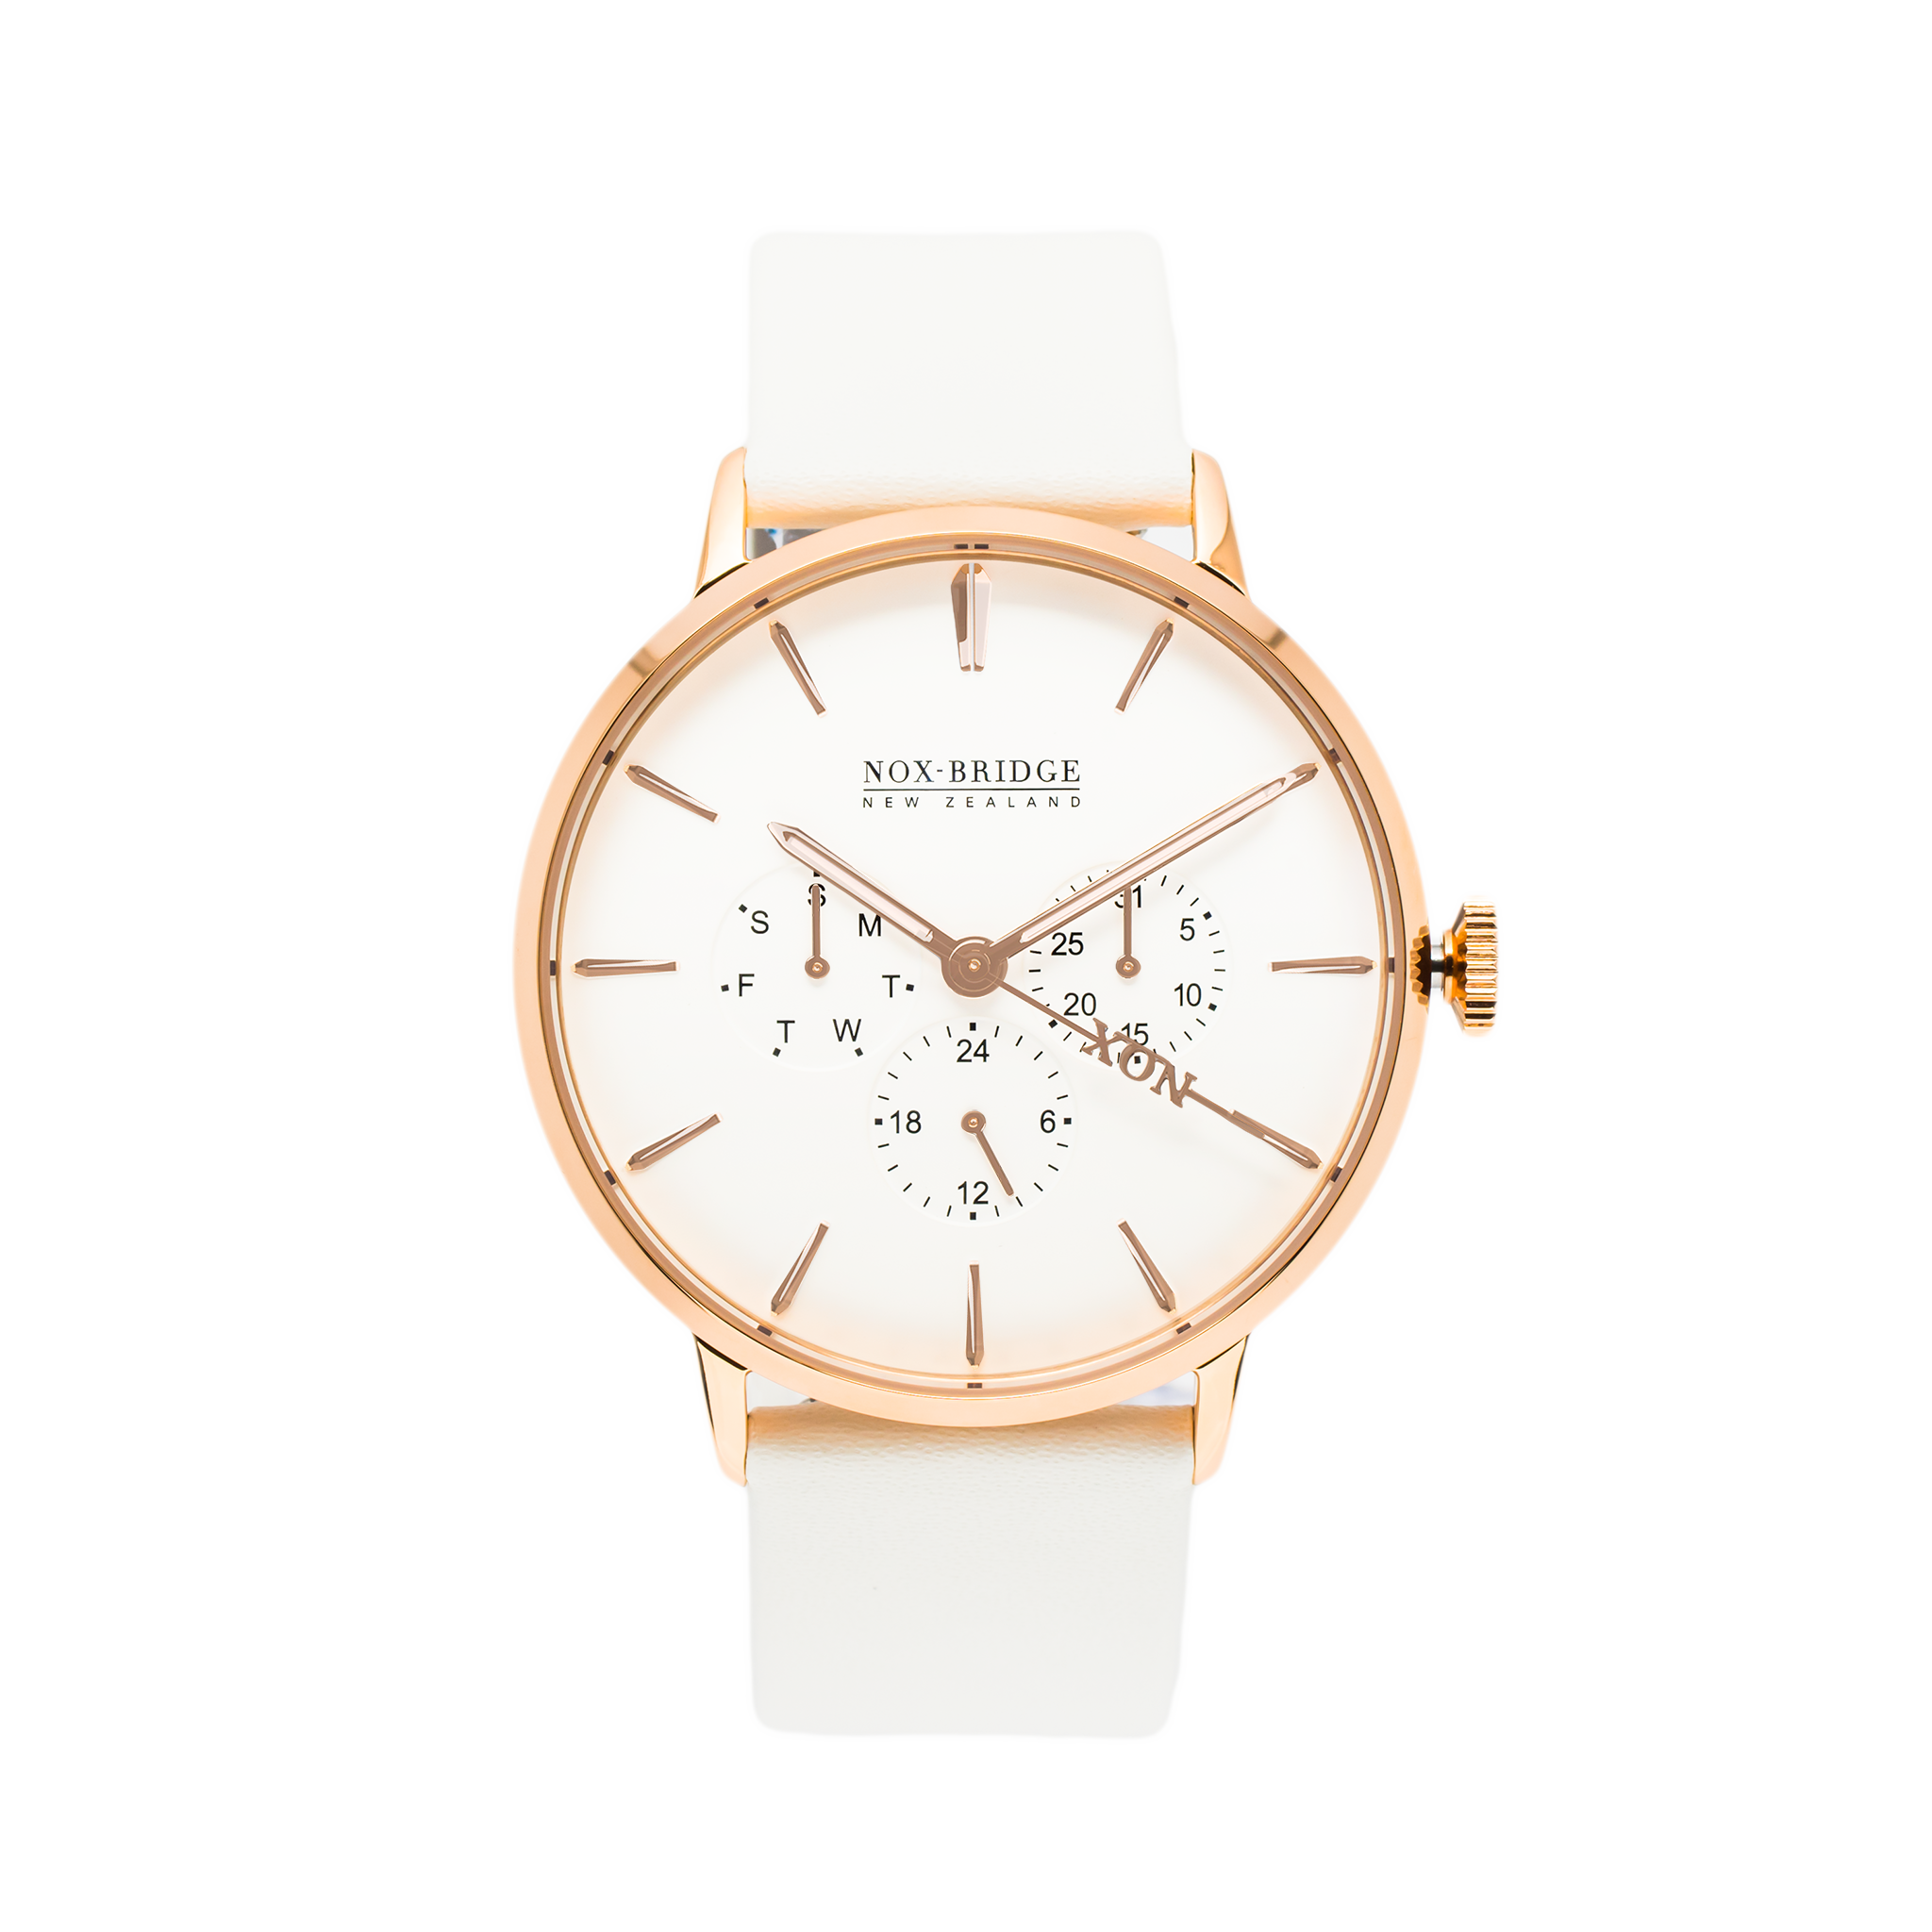 NOX-BRIDGE Classic Meissa Vegan White Leather Strap 41MM Rose Gold Watch